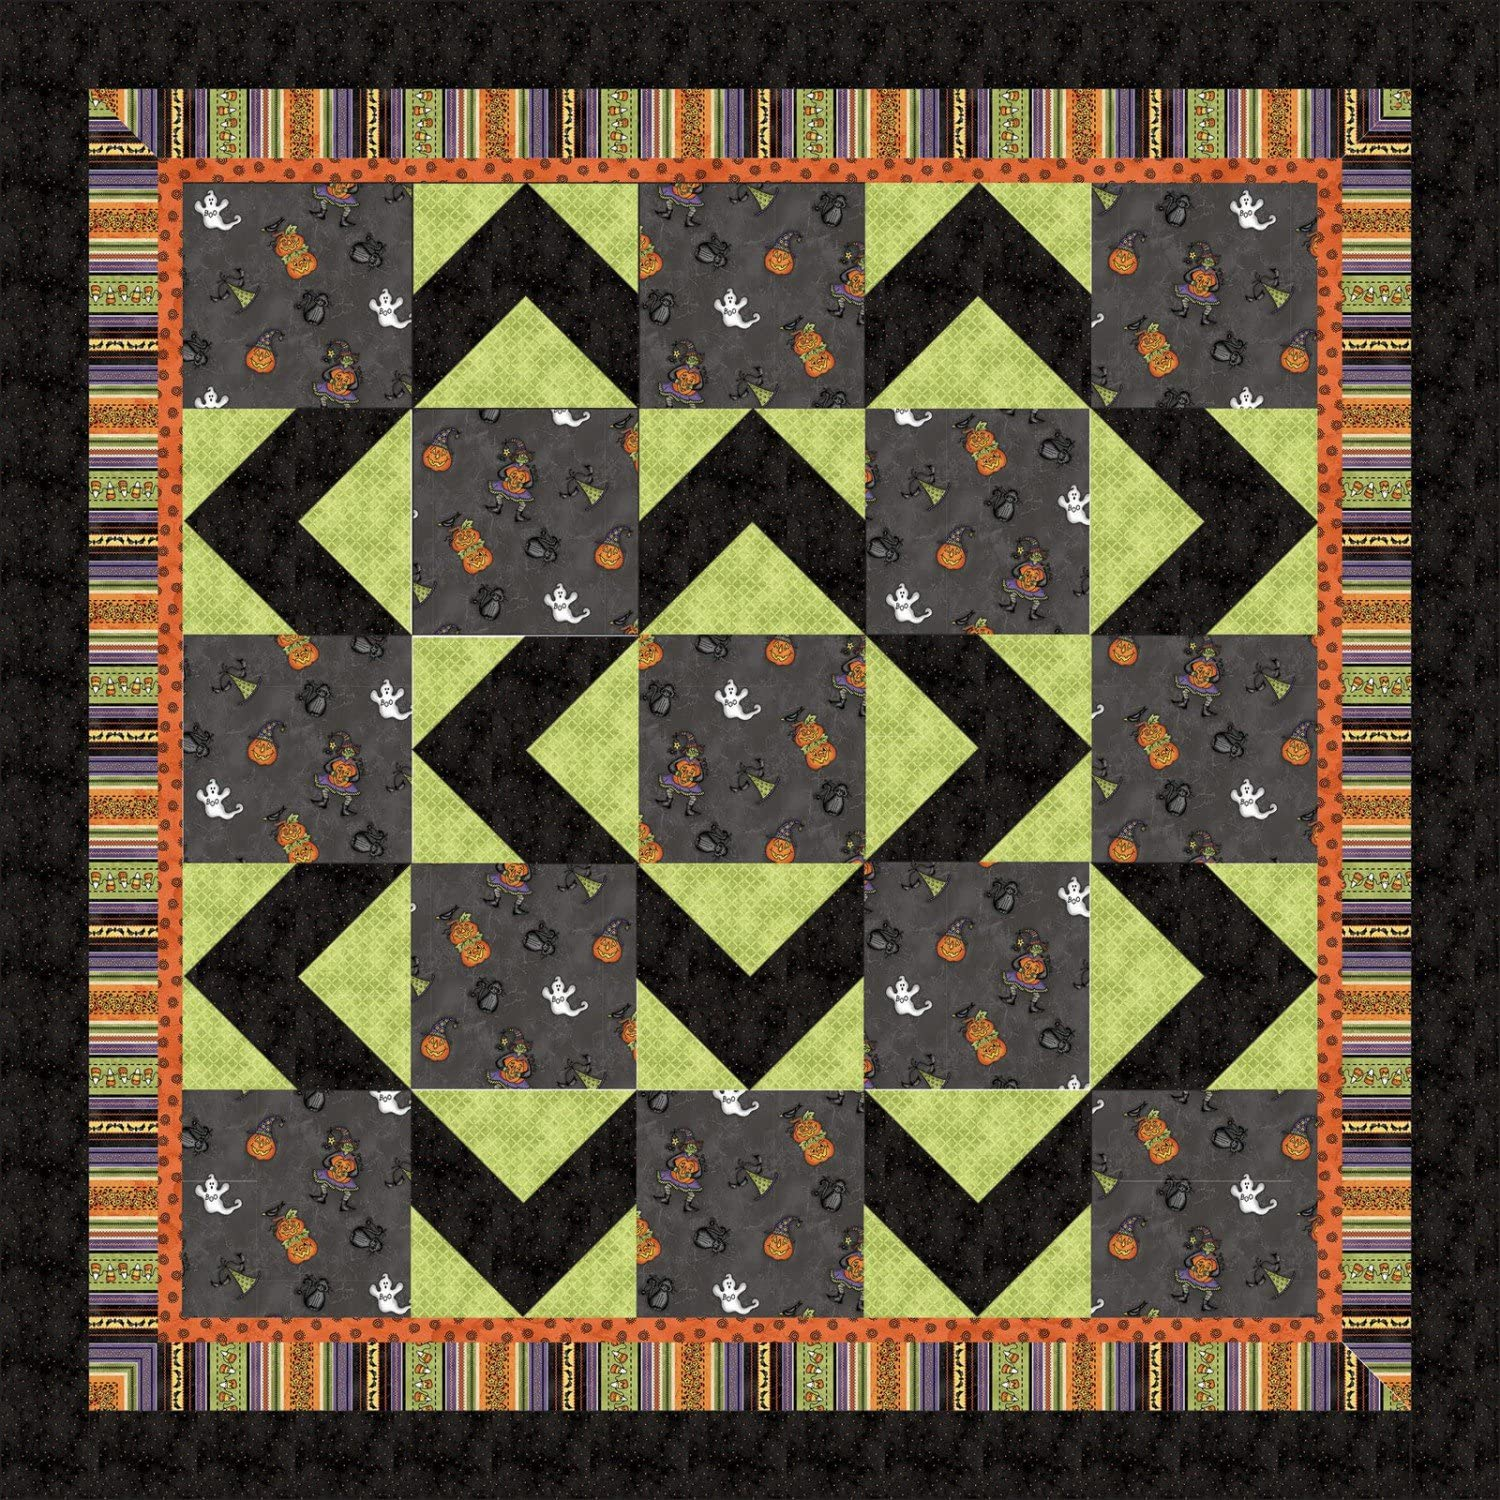 Halloweenie Walk About Quilt Kit by Robin Kingsley from Maywood Studio 100 Cotton Quilt Fabric 61 x 61 Halloween